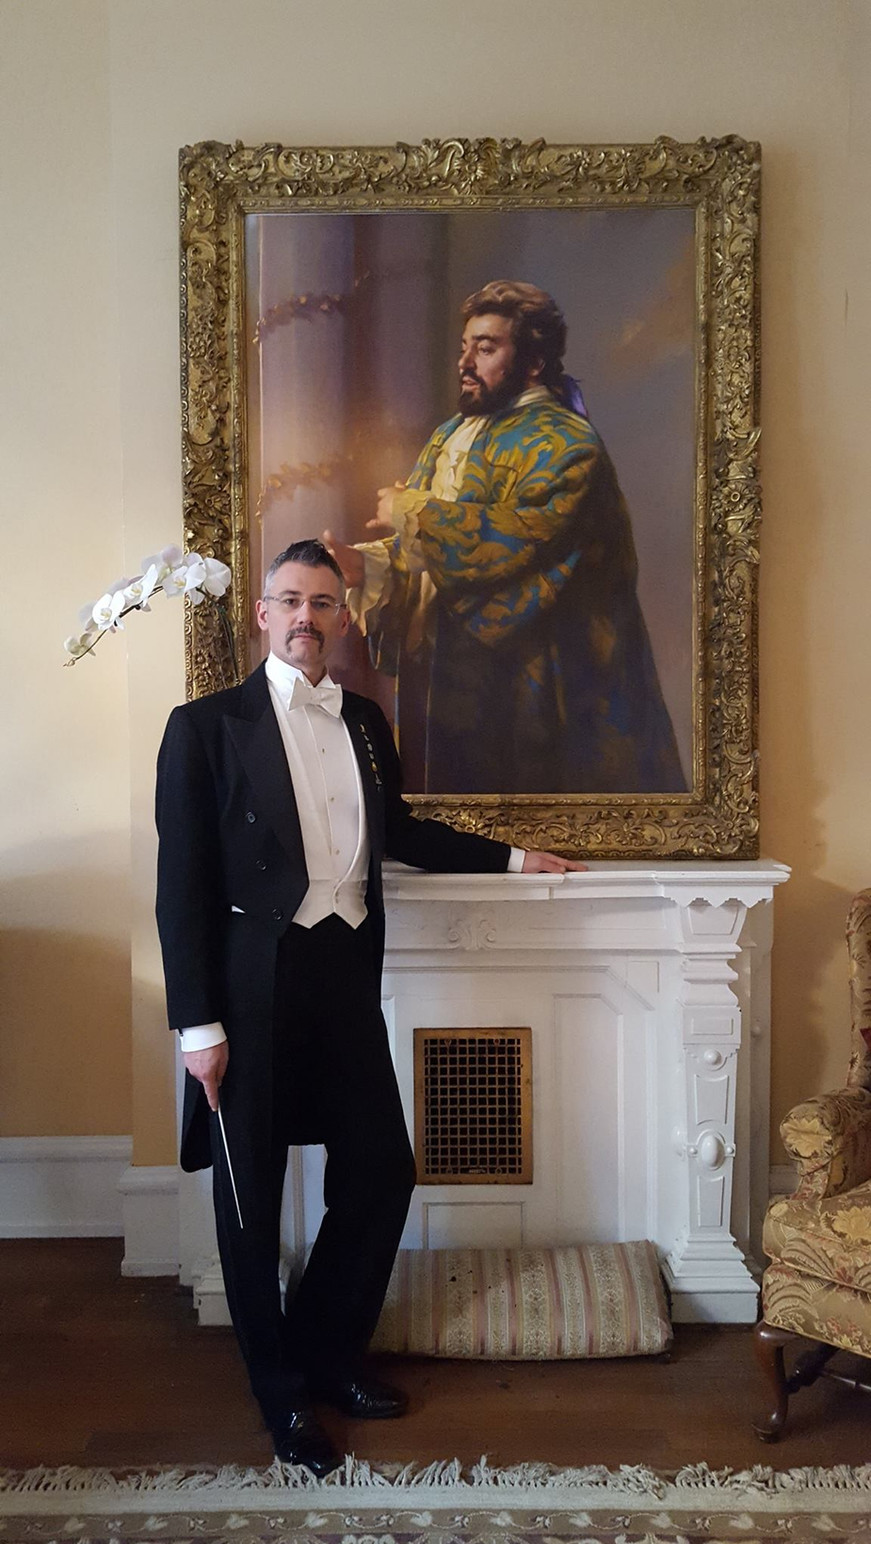 Dario Salvi with a portrait of Pavarotti in the Academy of Vocal Arts in Philadelphia